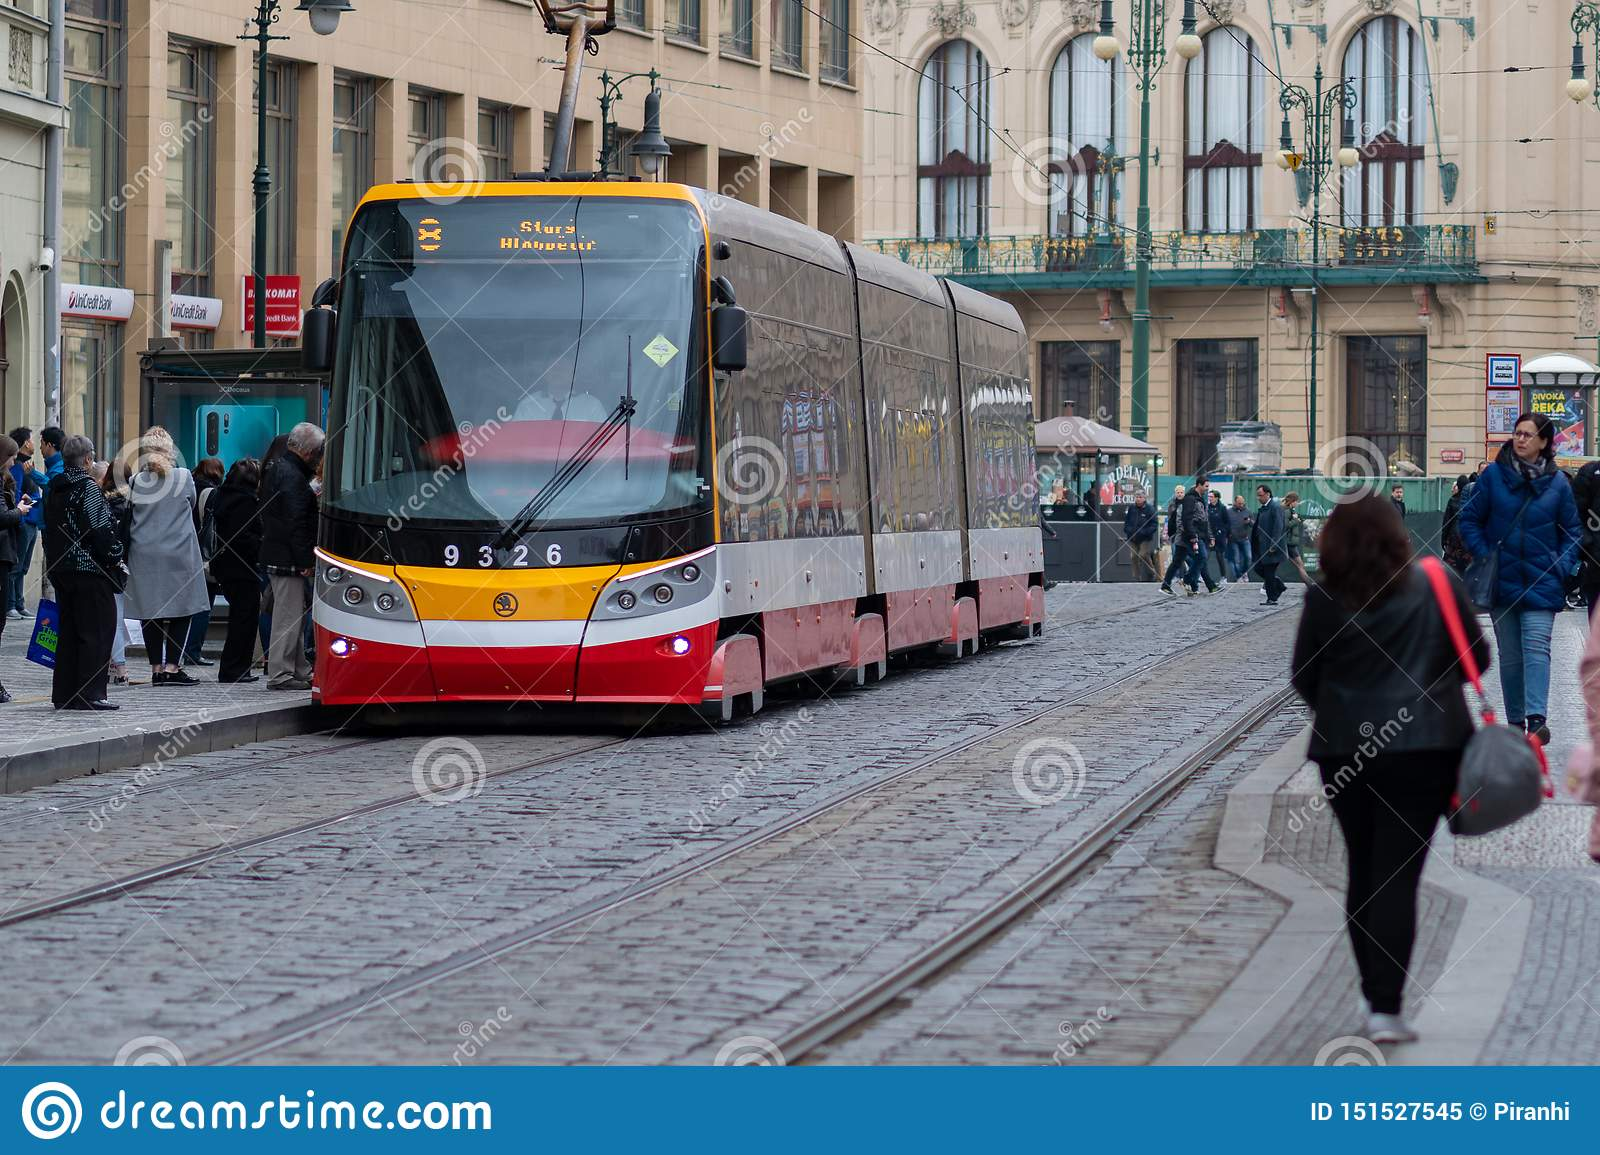 PRAGUE, CZECH REPUBLIC - 10TH APRIL 2019: Pragues new model of tram picks up customers in Spring